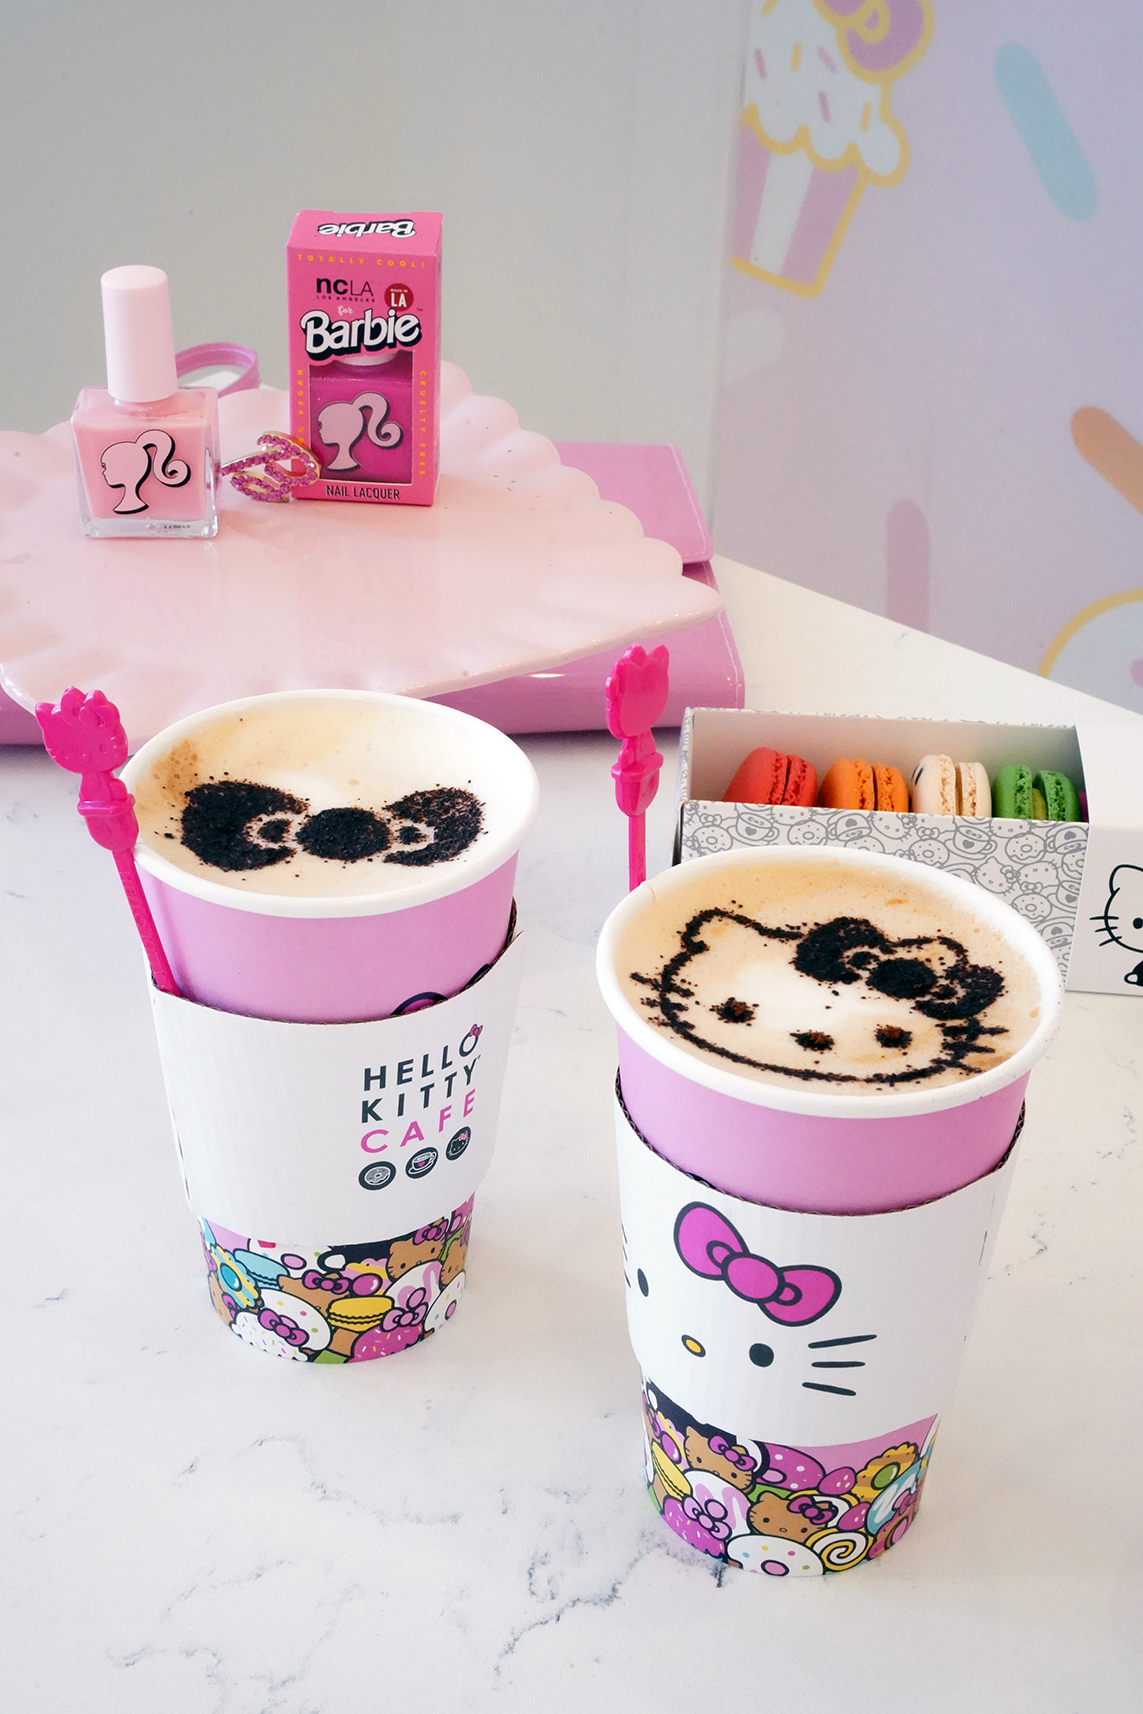 Hello Kitty Cafe Coffee with Hello Kitty Design, Gluten Free Macaroons, Barbie NCLA Pink Nail Polishes